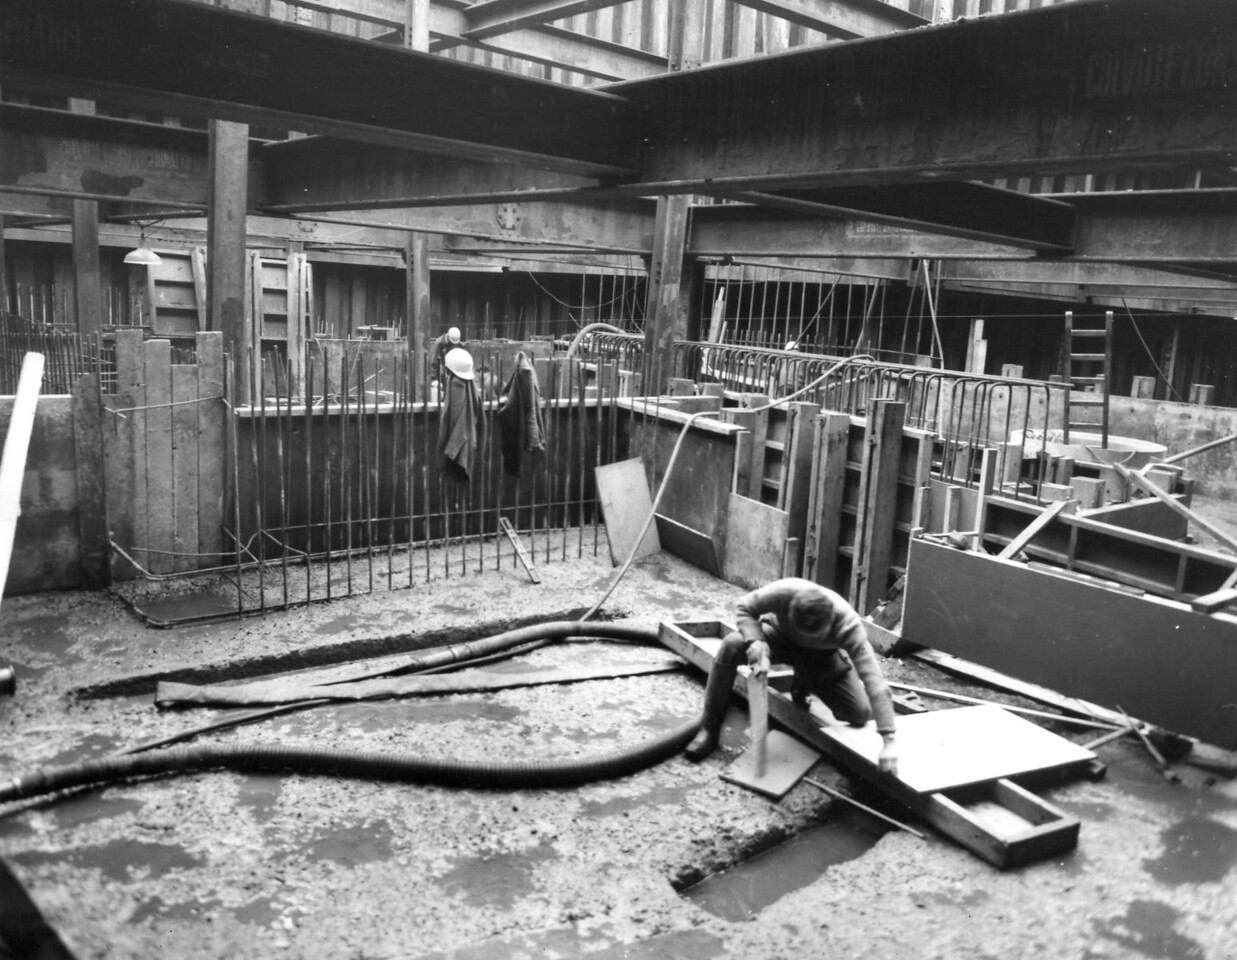 D058Entrance works - east roundhead, preparations in progress for concreting up to pumphouse floor level    27/11/1962